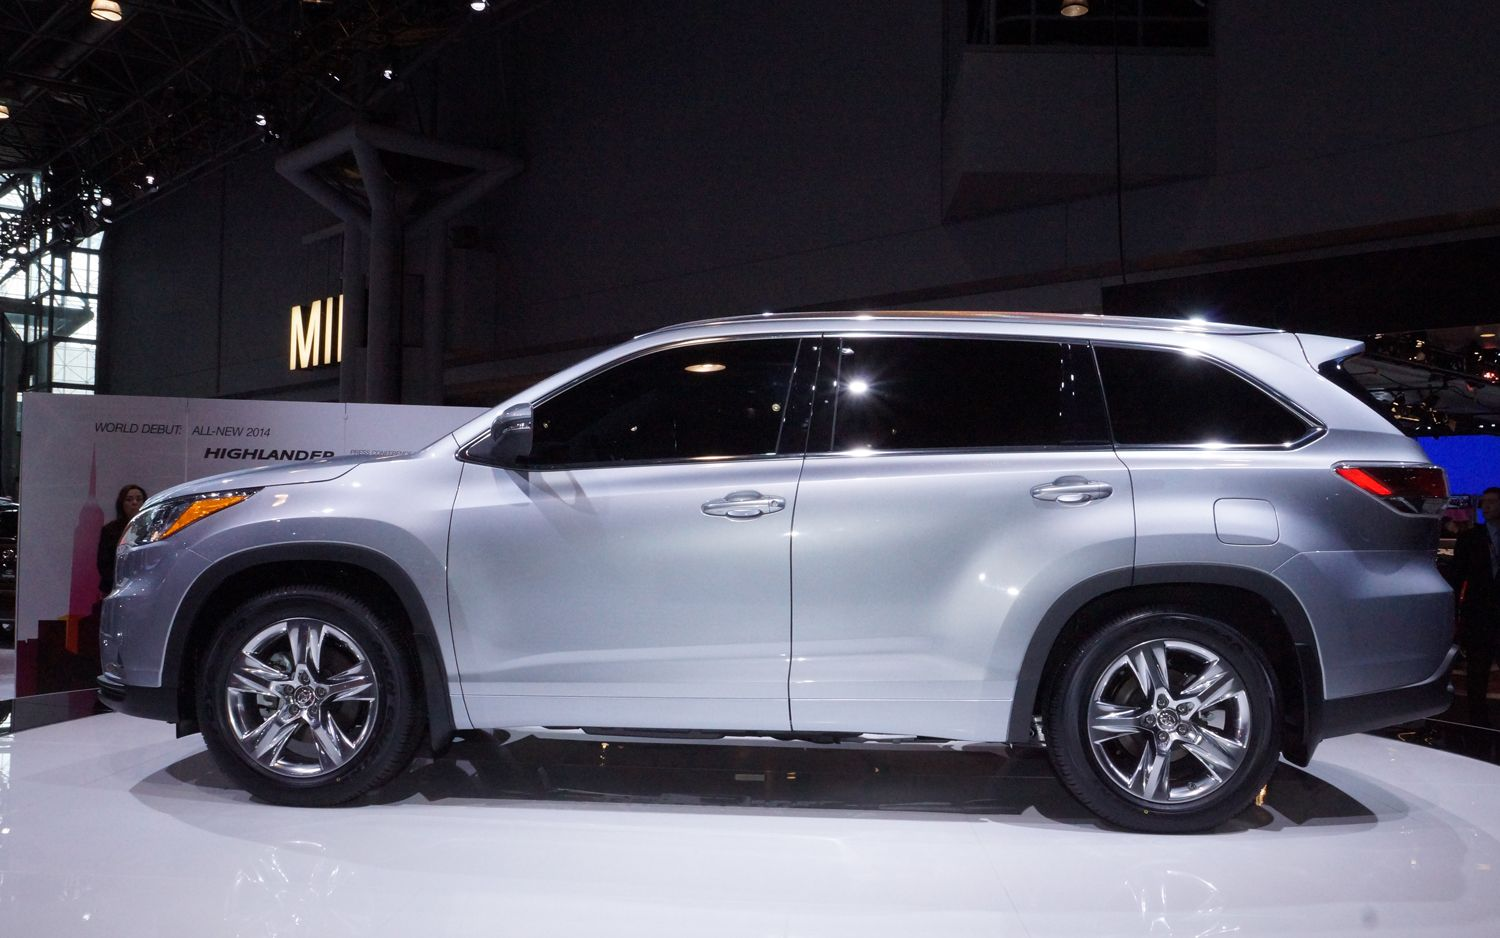 2016 toyota highlander full size suv side after the 2015 model toyota highlander is presently prepared to supply the auto market with a brand new